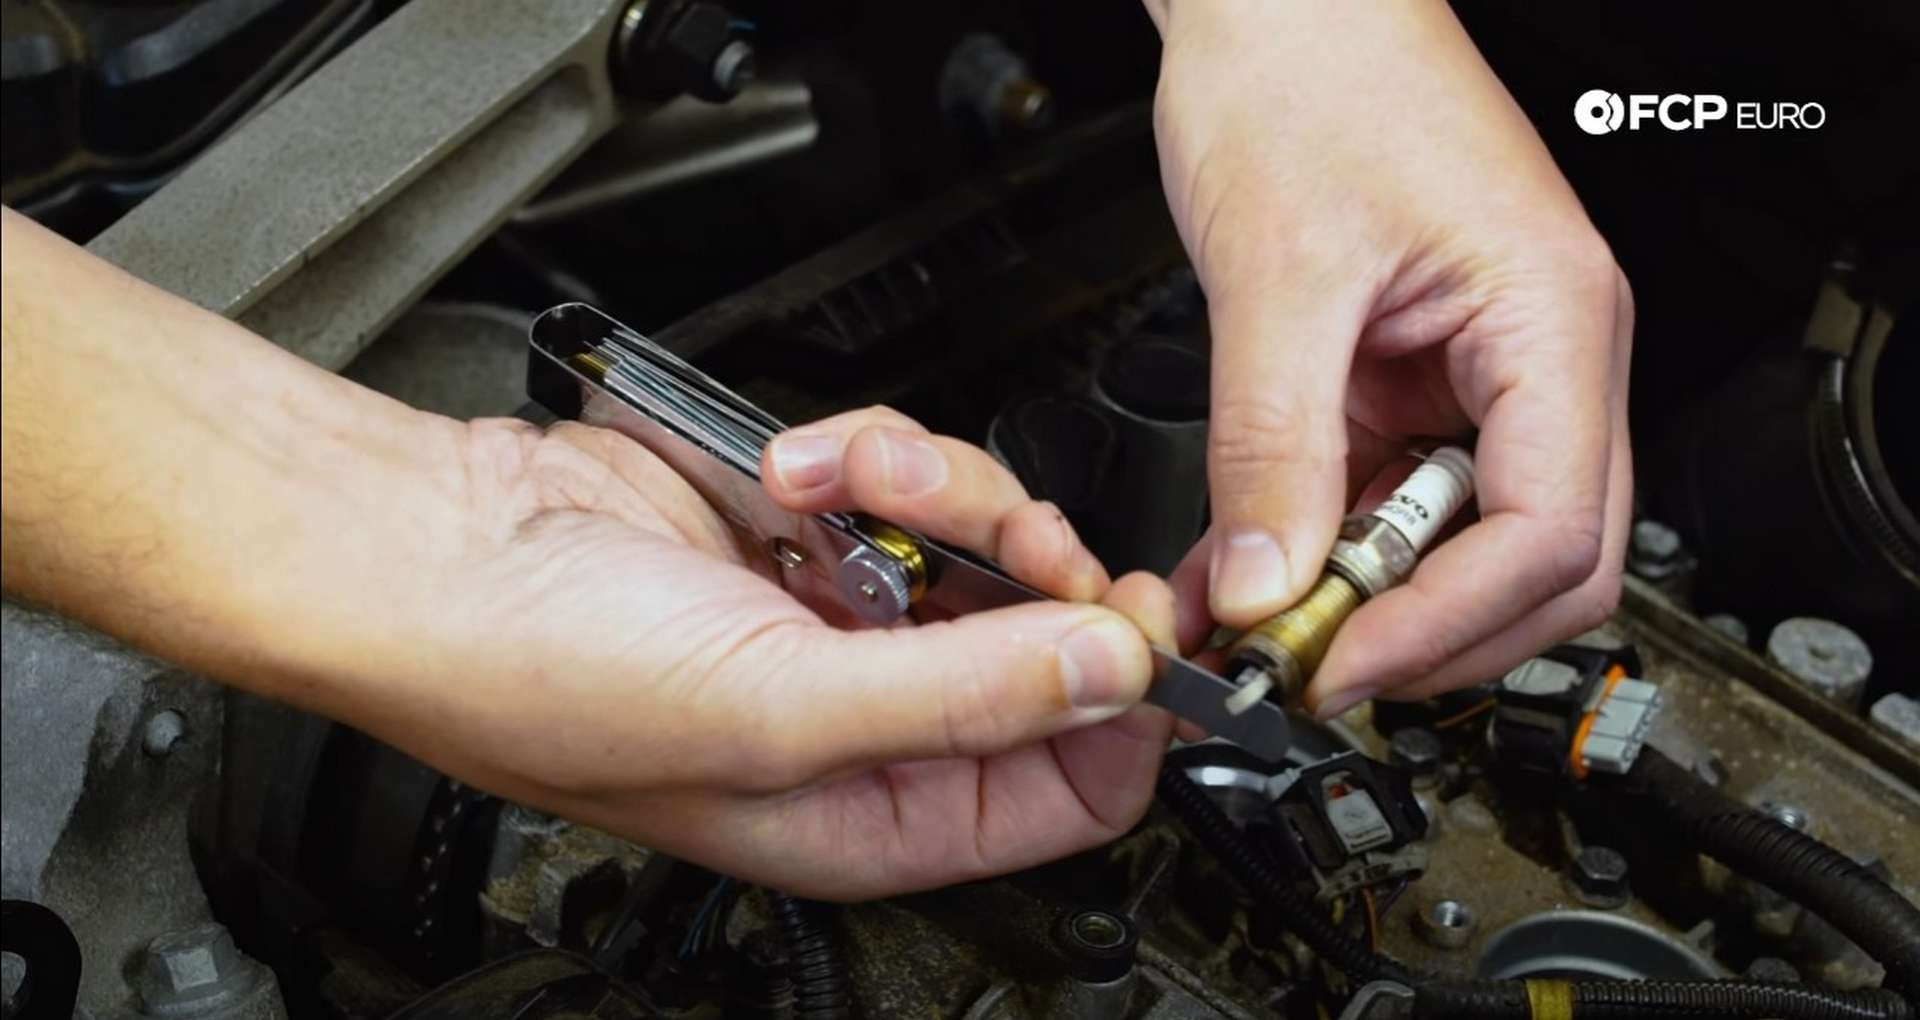 DIY Volvo Spark Plug and Ignition Coil Replacement checking the spark plug gap